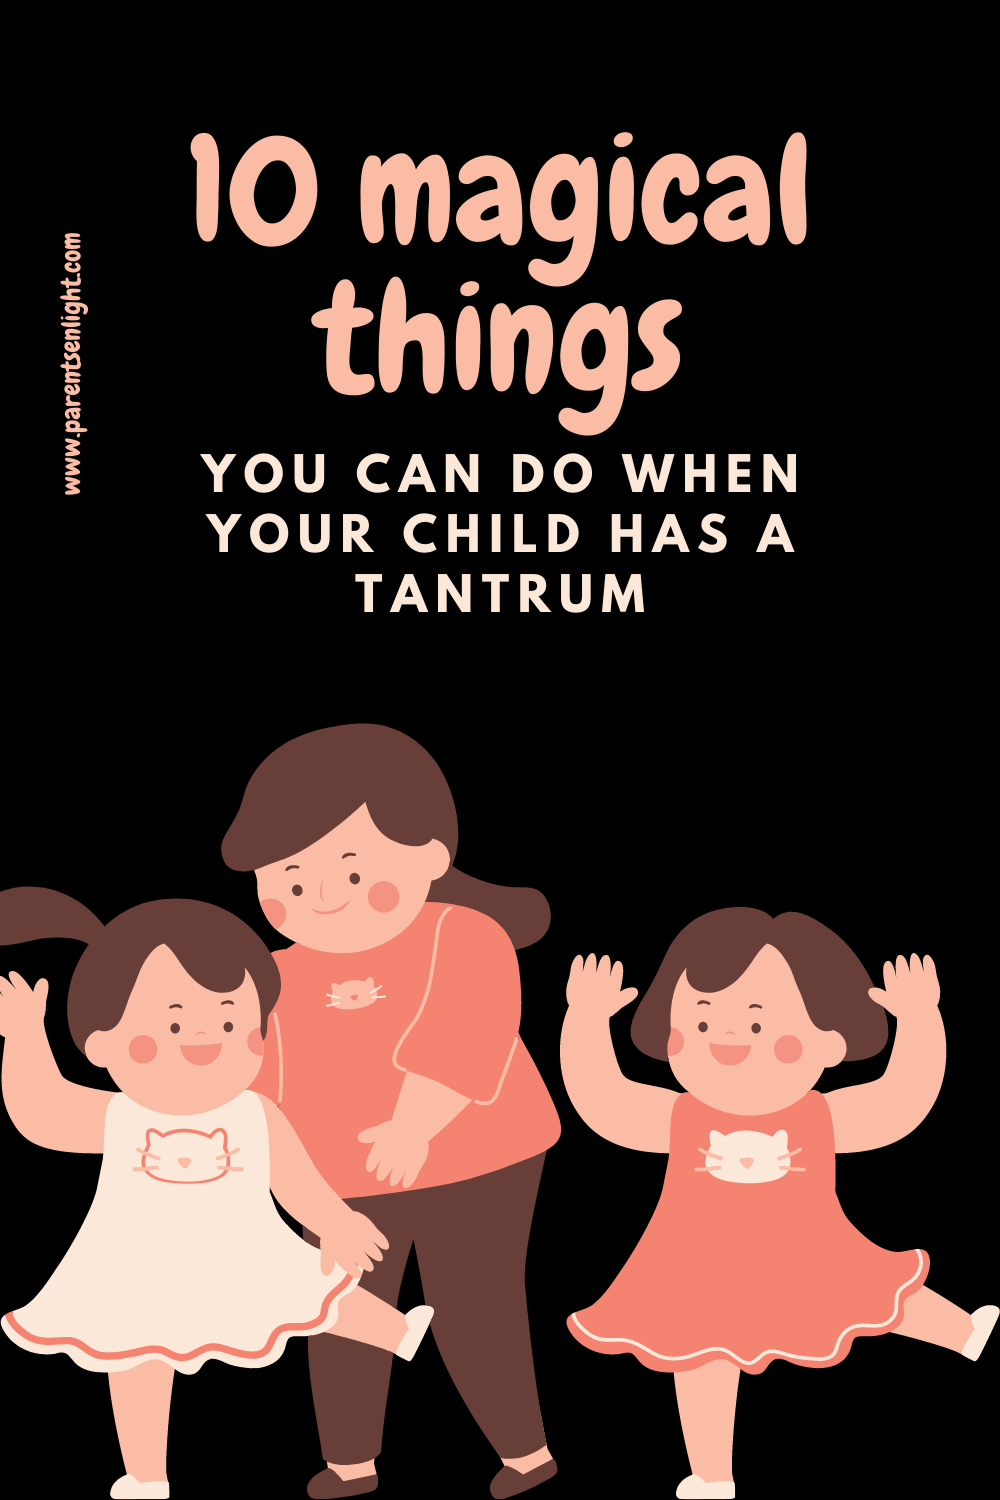 If you are at a loss when it comes to your child's tantrums, this article gives you the perspective shift that will help you turn the problem into the solution #handlingtantrums #tantrums #positiveparenting #peacefulparenting #children'sbigfeelings #raisingstrongwilledchildren #HSC